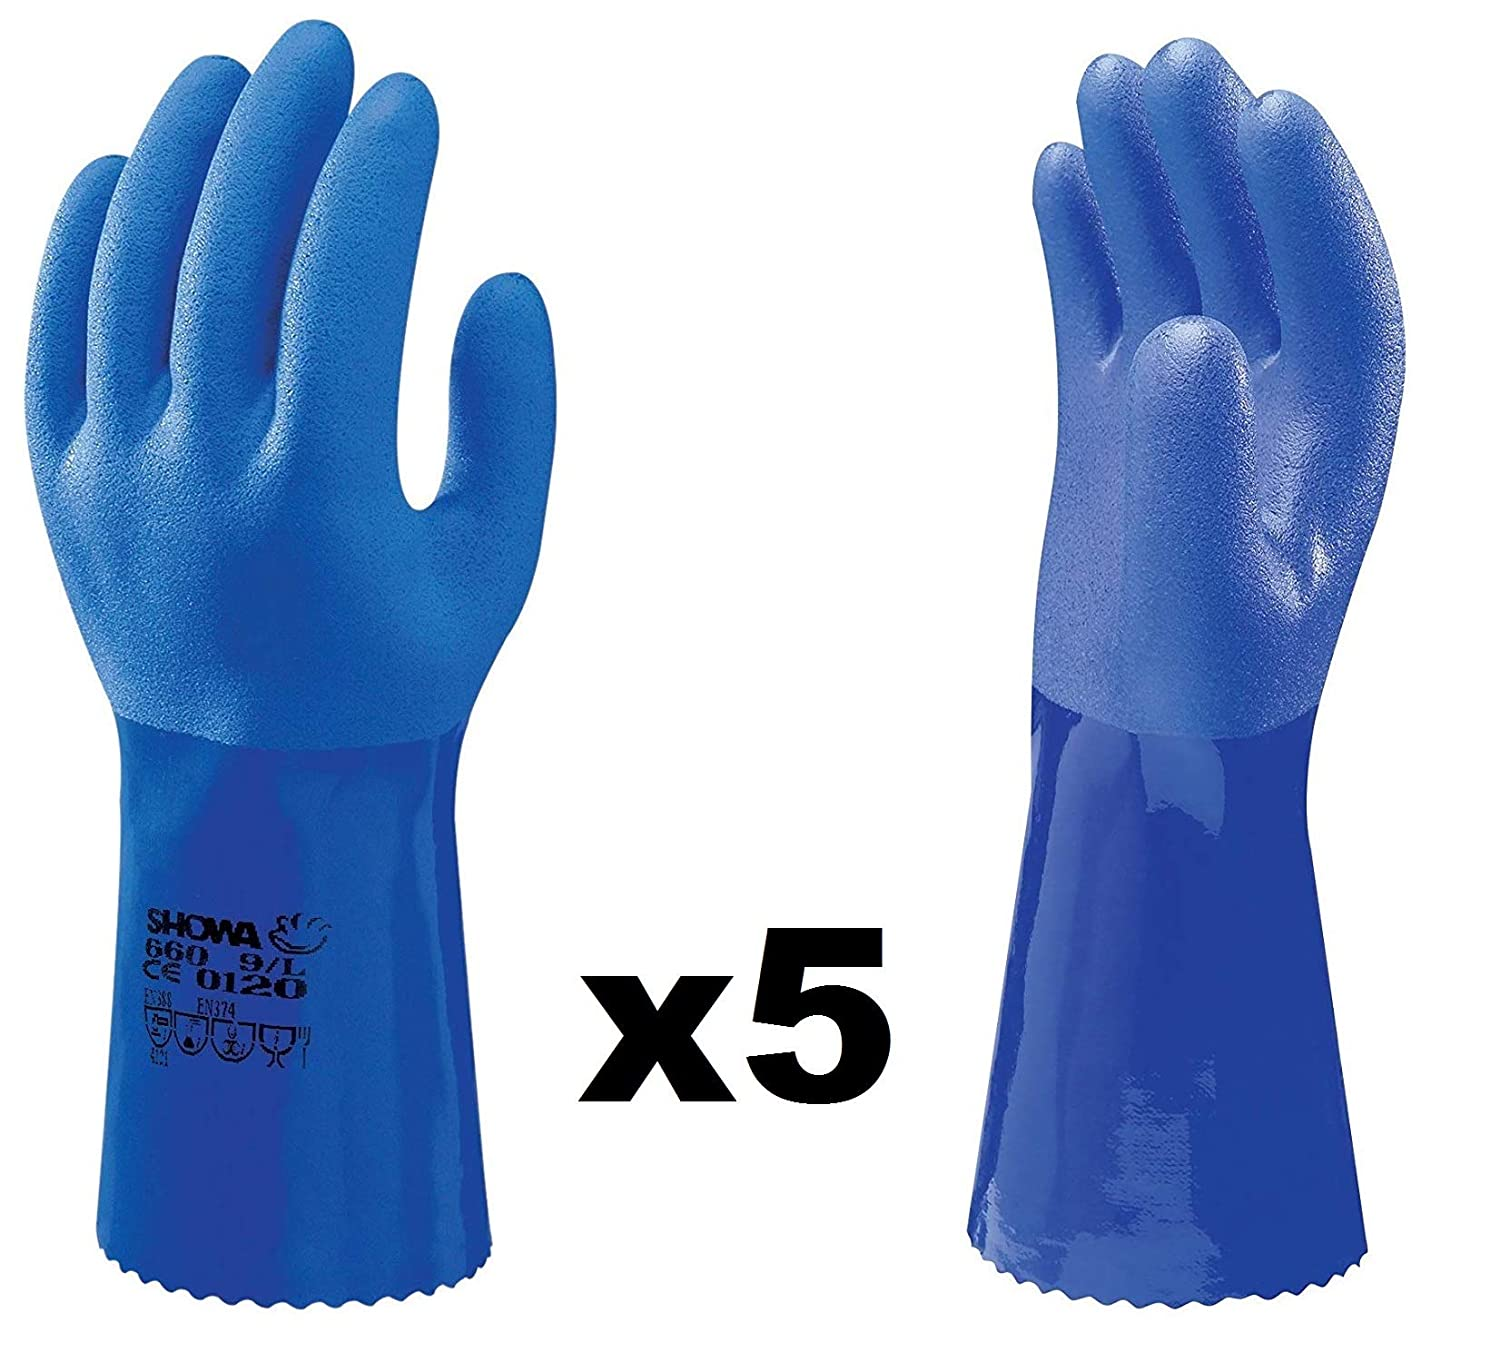 Showa 660 PVC Oil Resistant Chemical Protection Work Long Gloves